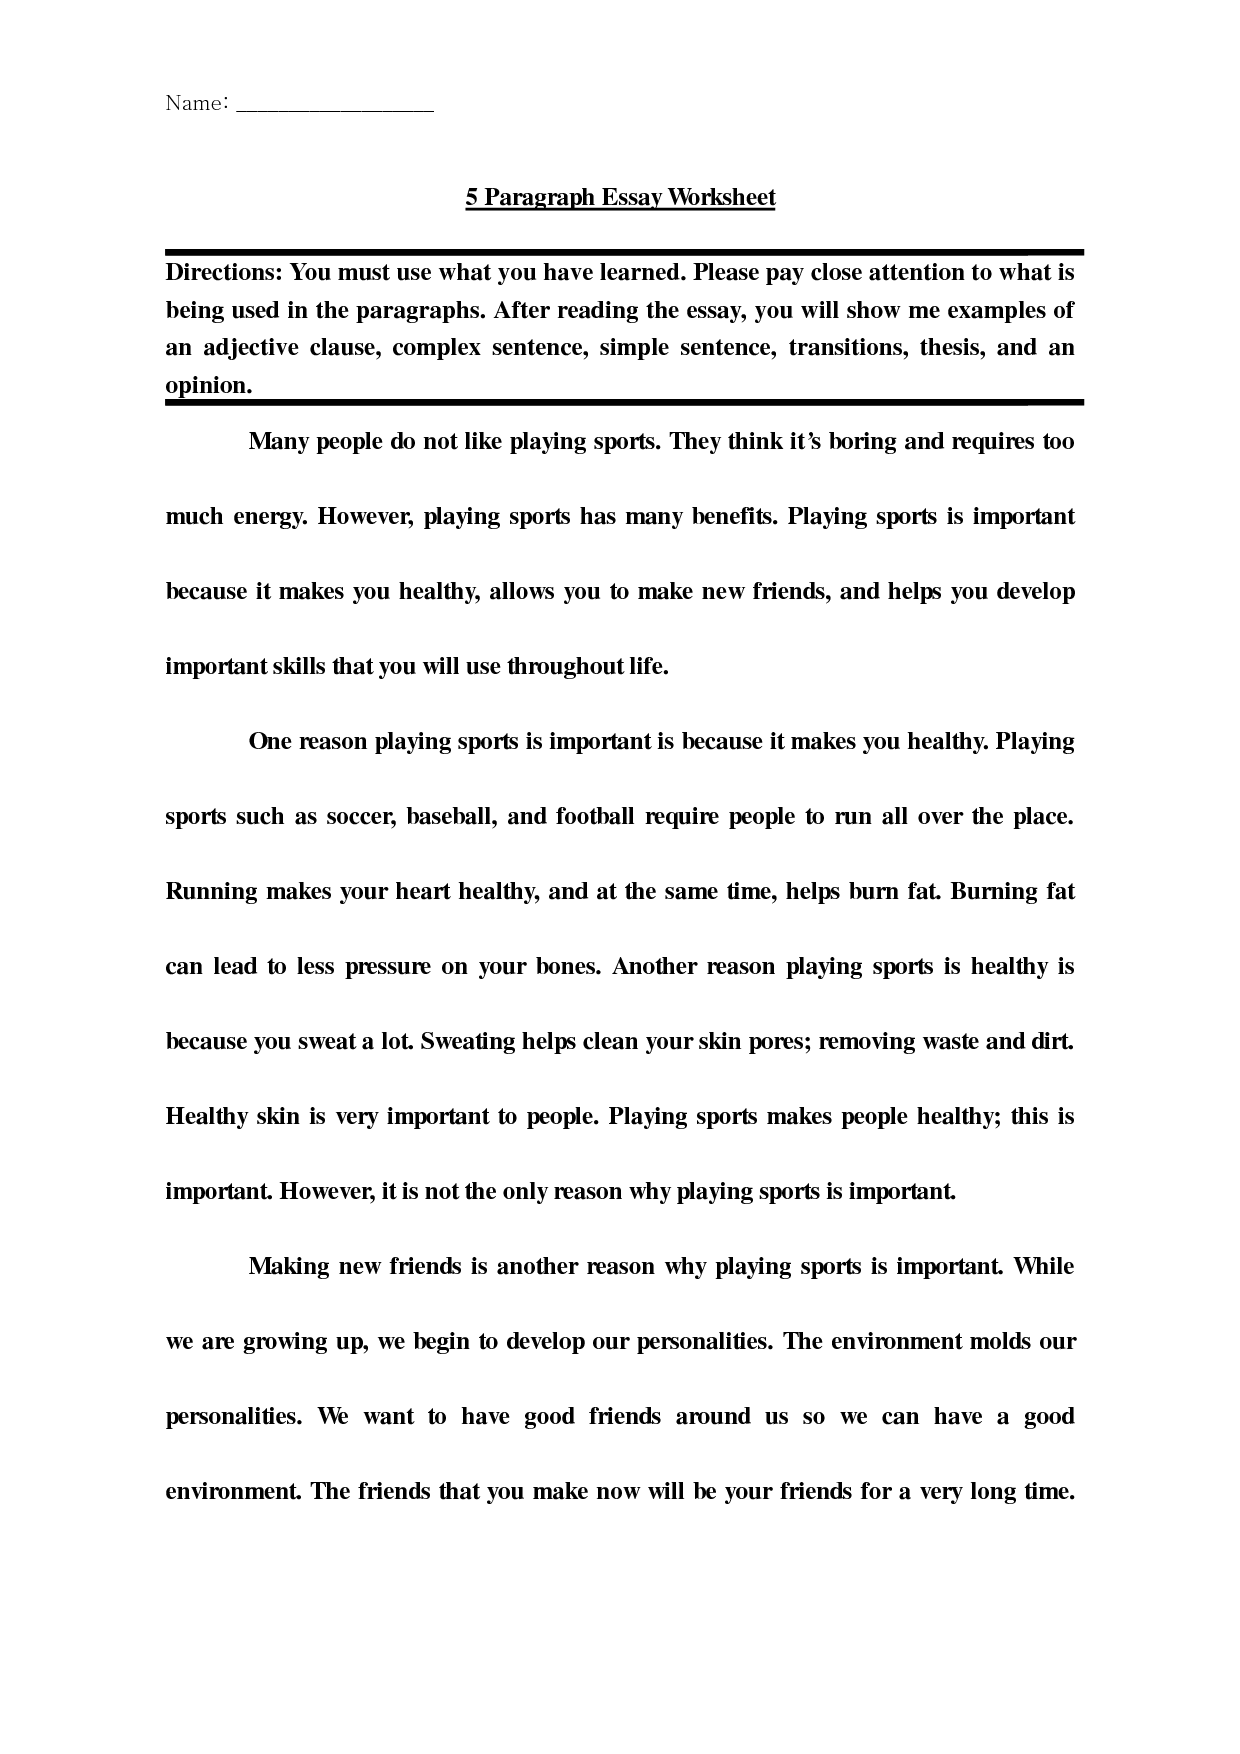 Five Paragraph Essay Worksheet Outline